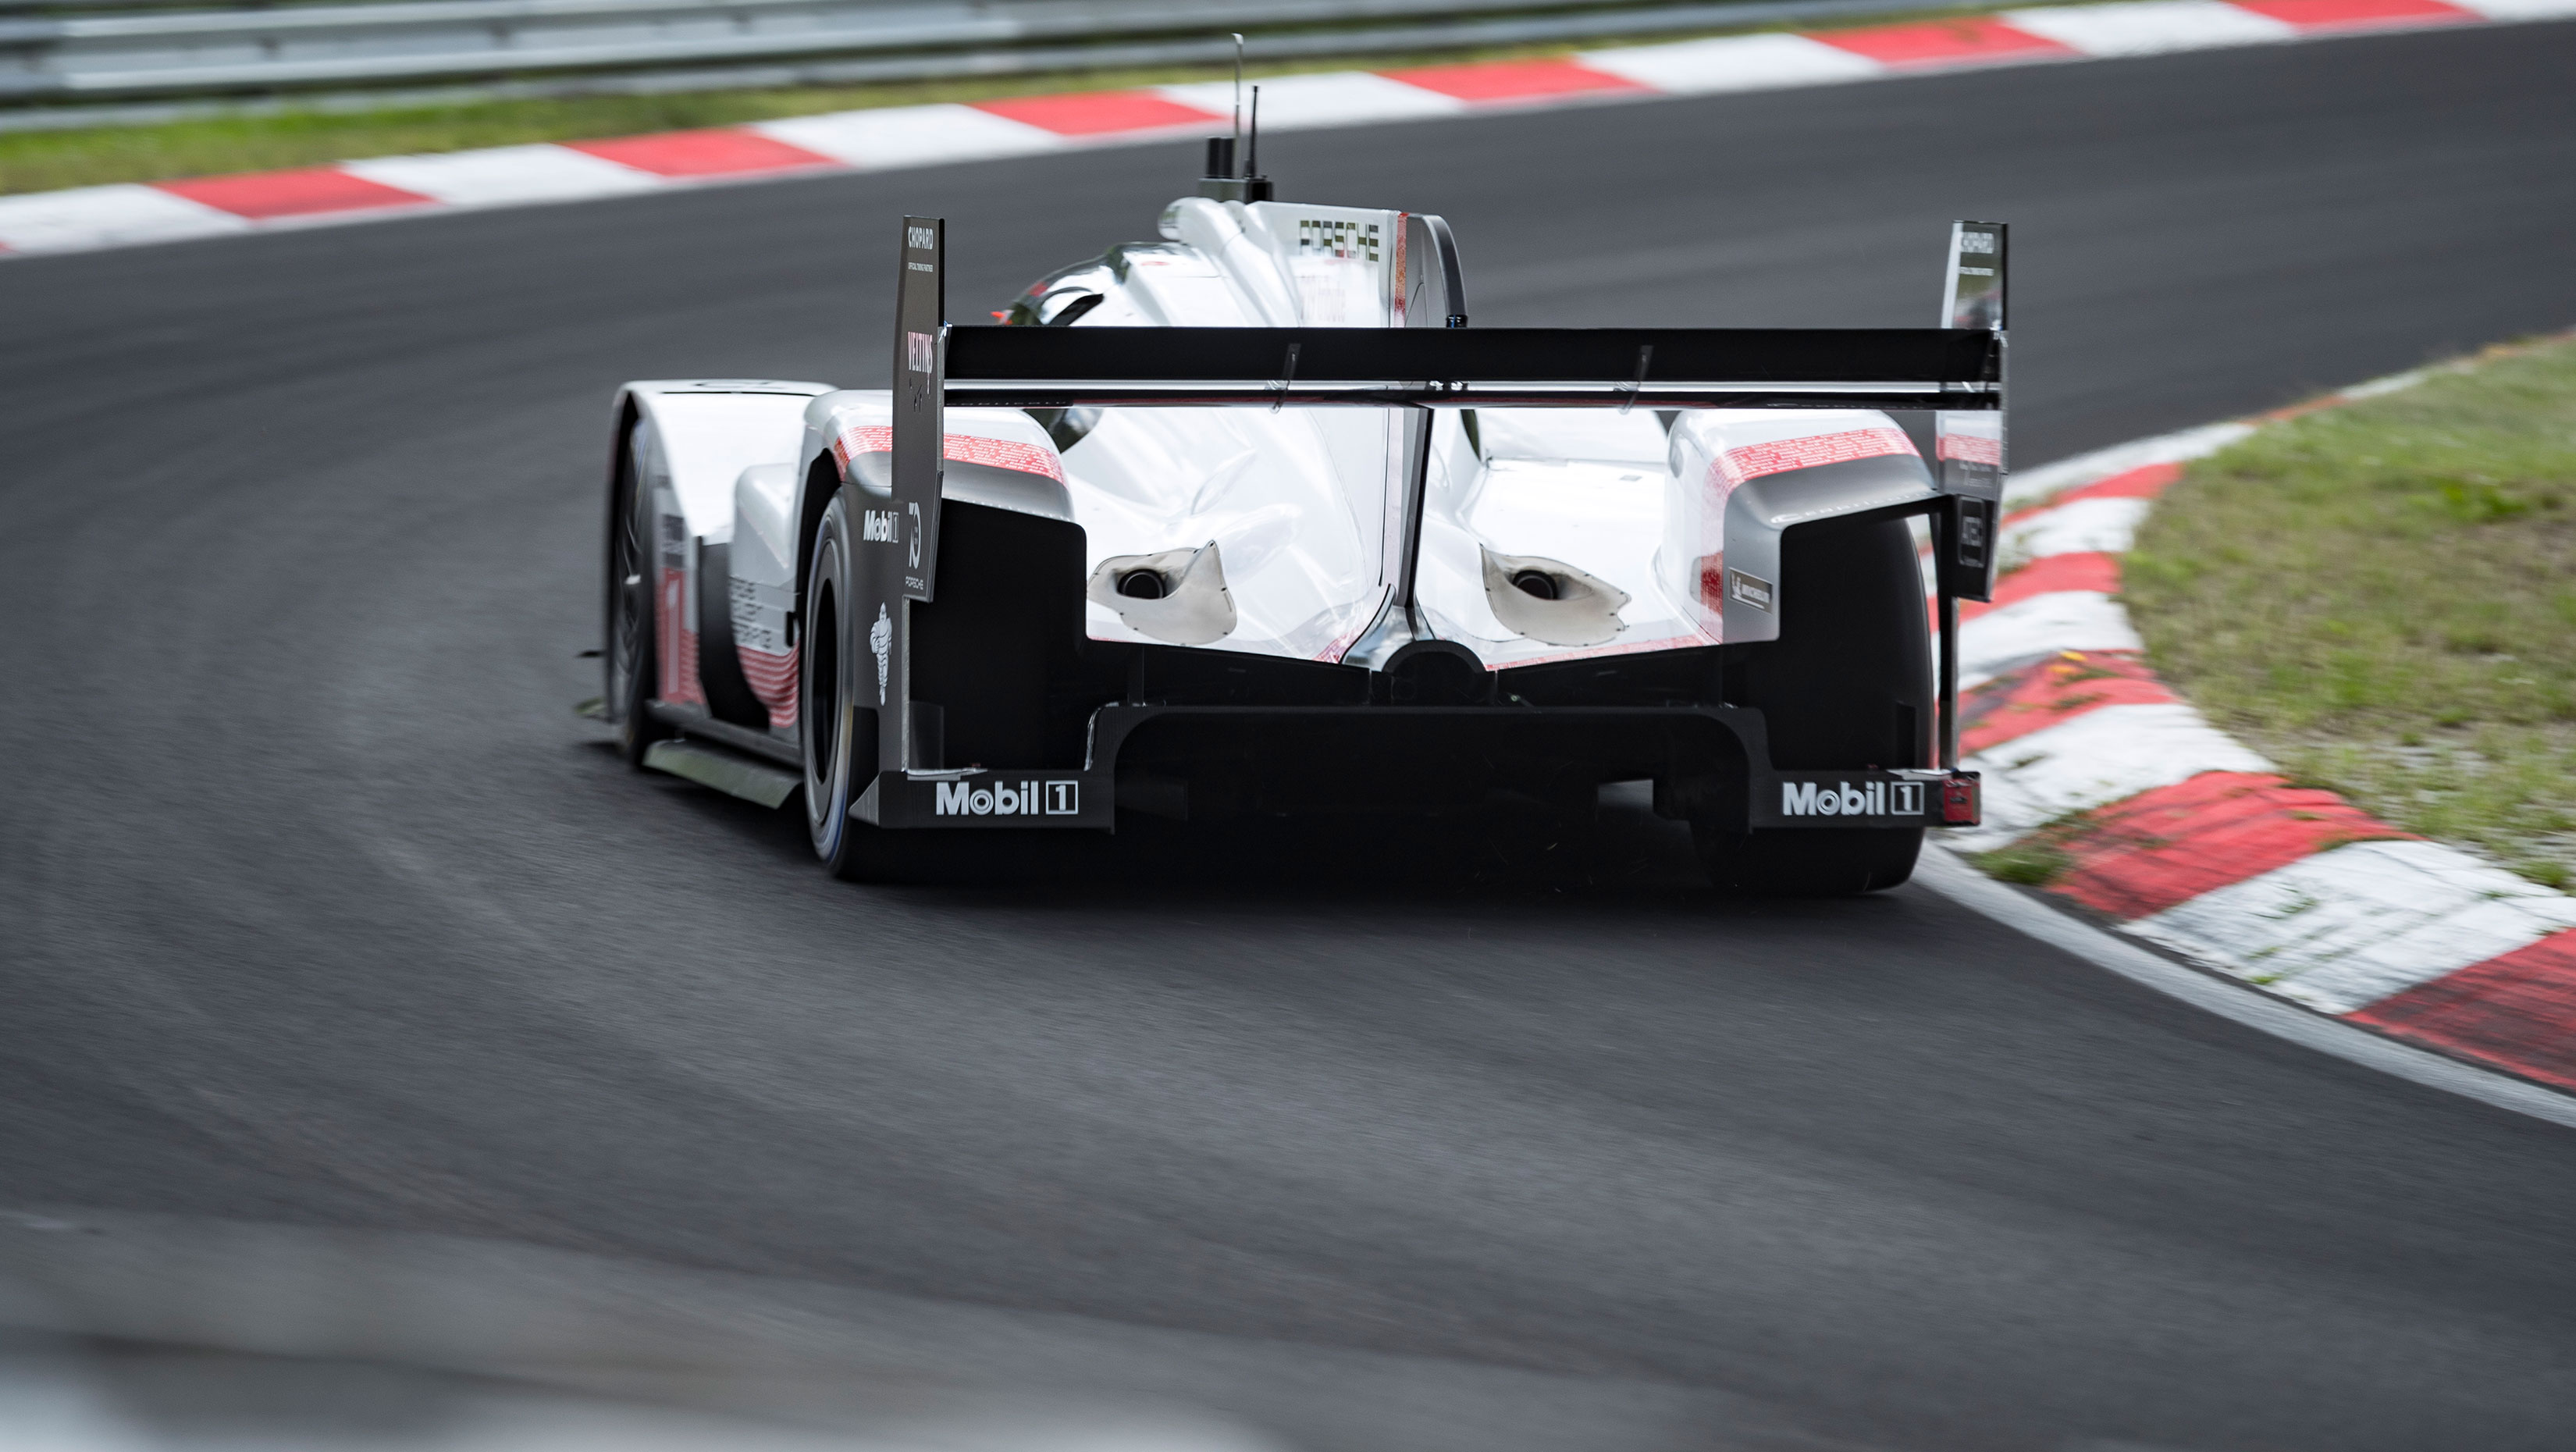 Porsche 919 Evo officially laps the 'Ring in 5:19.5 smashing the lap record